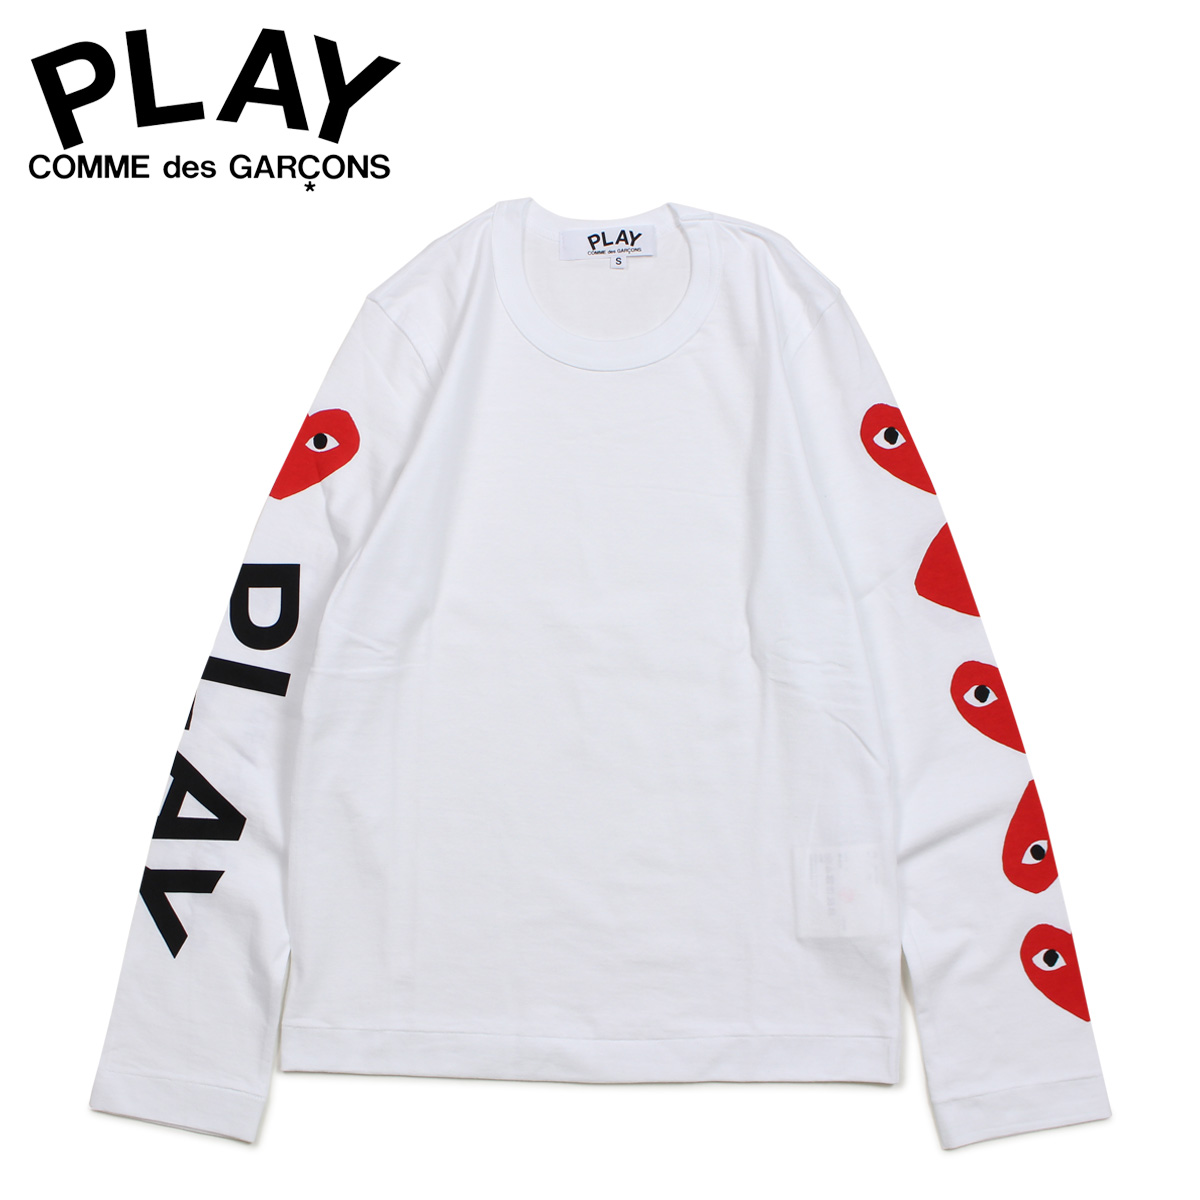 PLAY COMME des GARCONS コムデギャルソン Tシャツ レディース 長袖 ロンT RED HEART LONG SLEEVE ホワイト 白 AZ-T261 [3/29 新入荷]